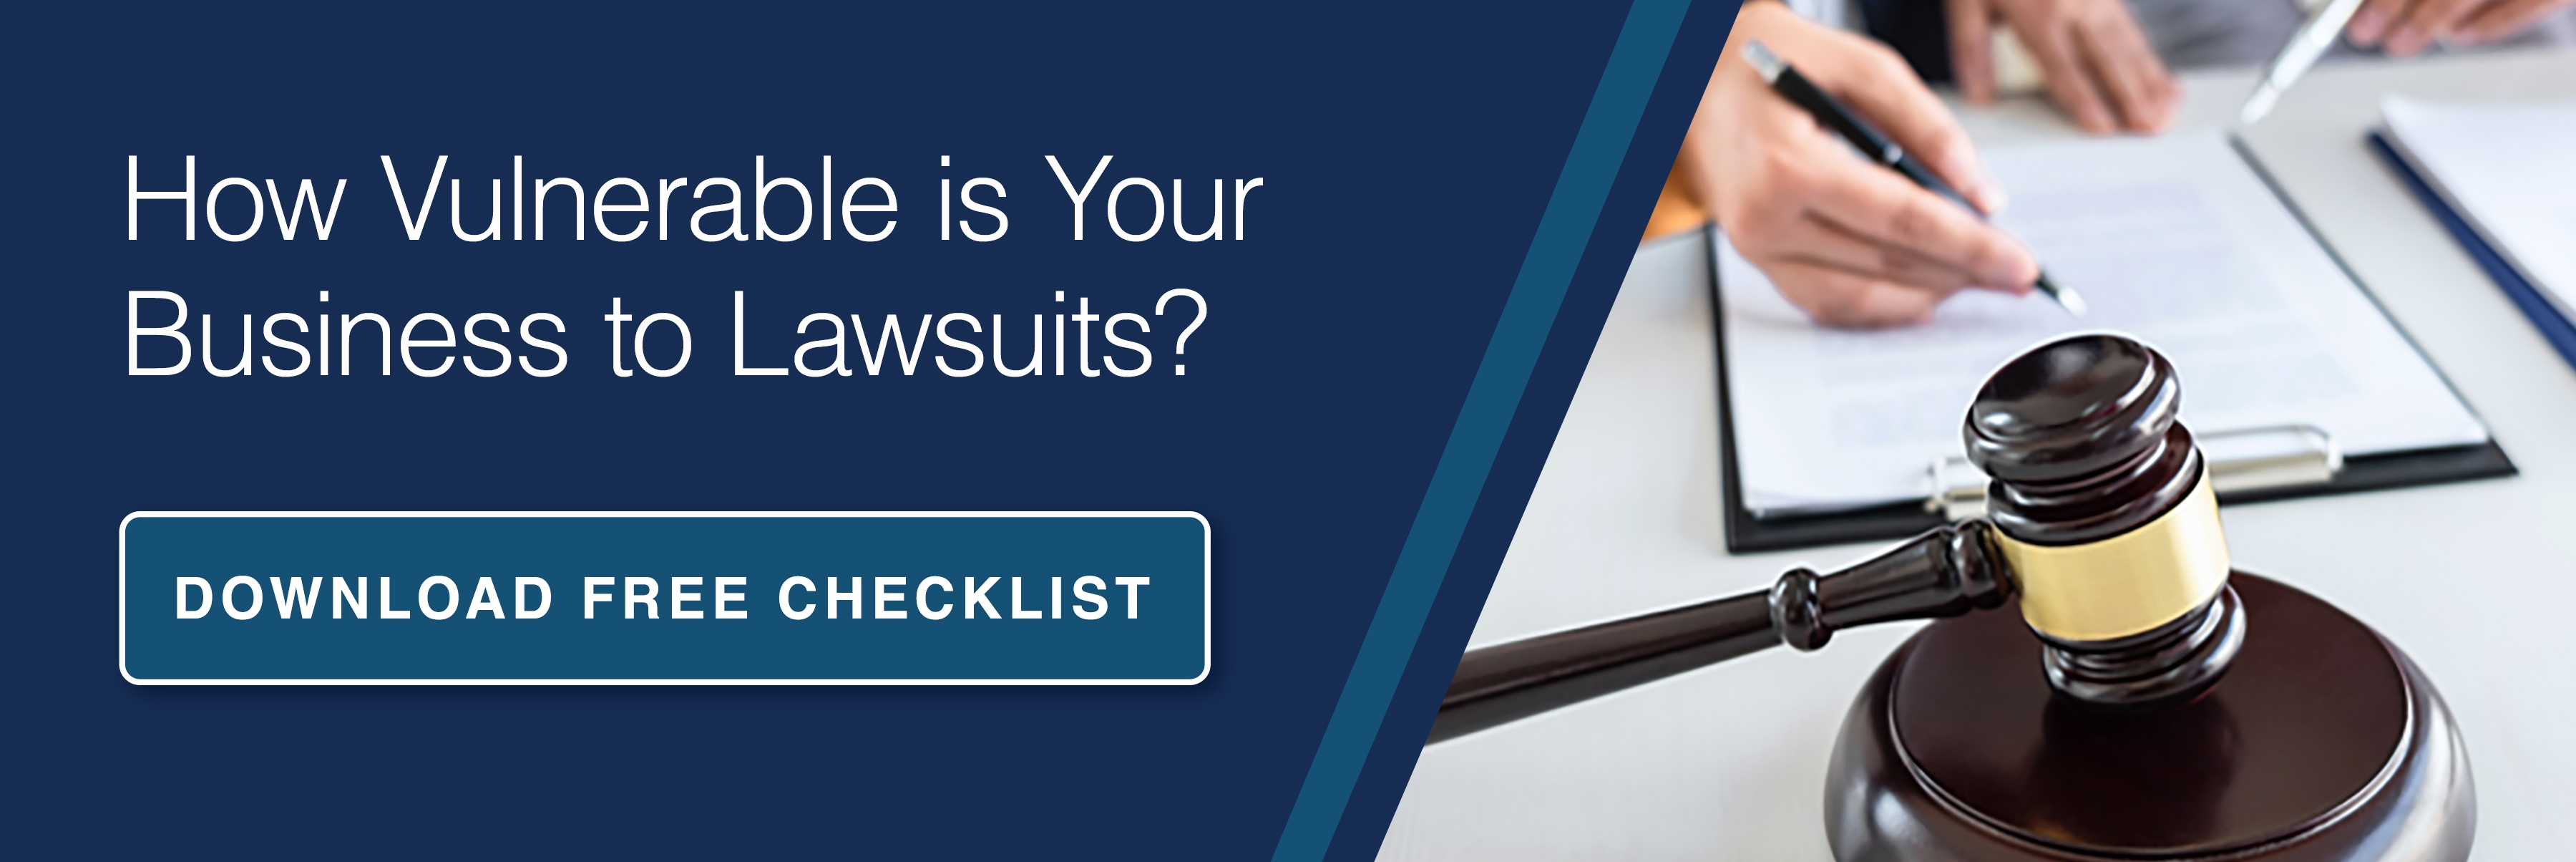 How Vulnerable is your business to lawsuits ebook CTA